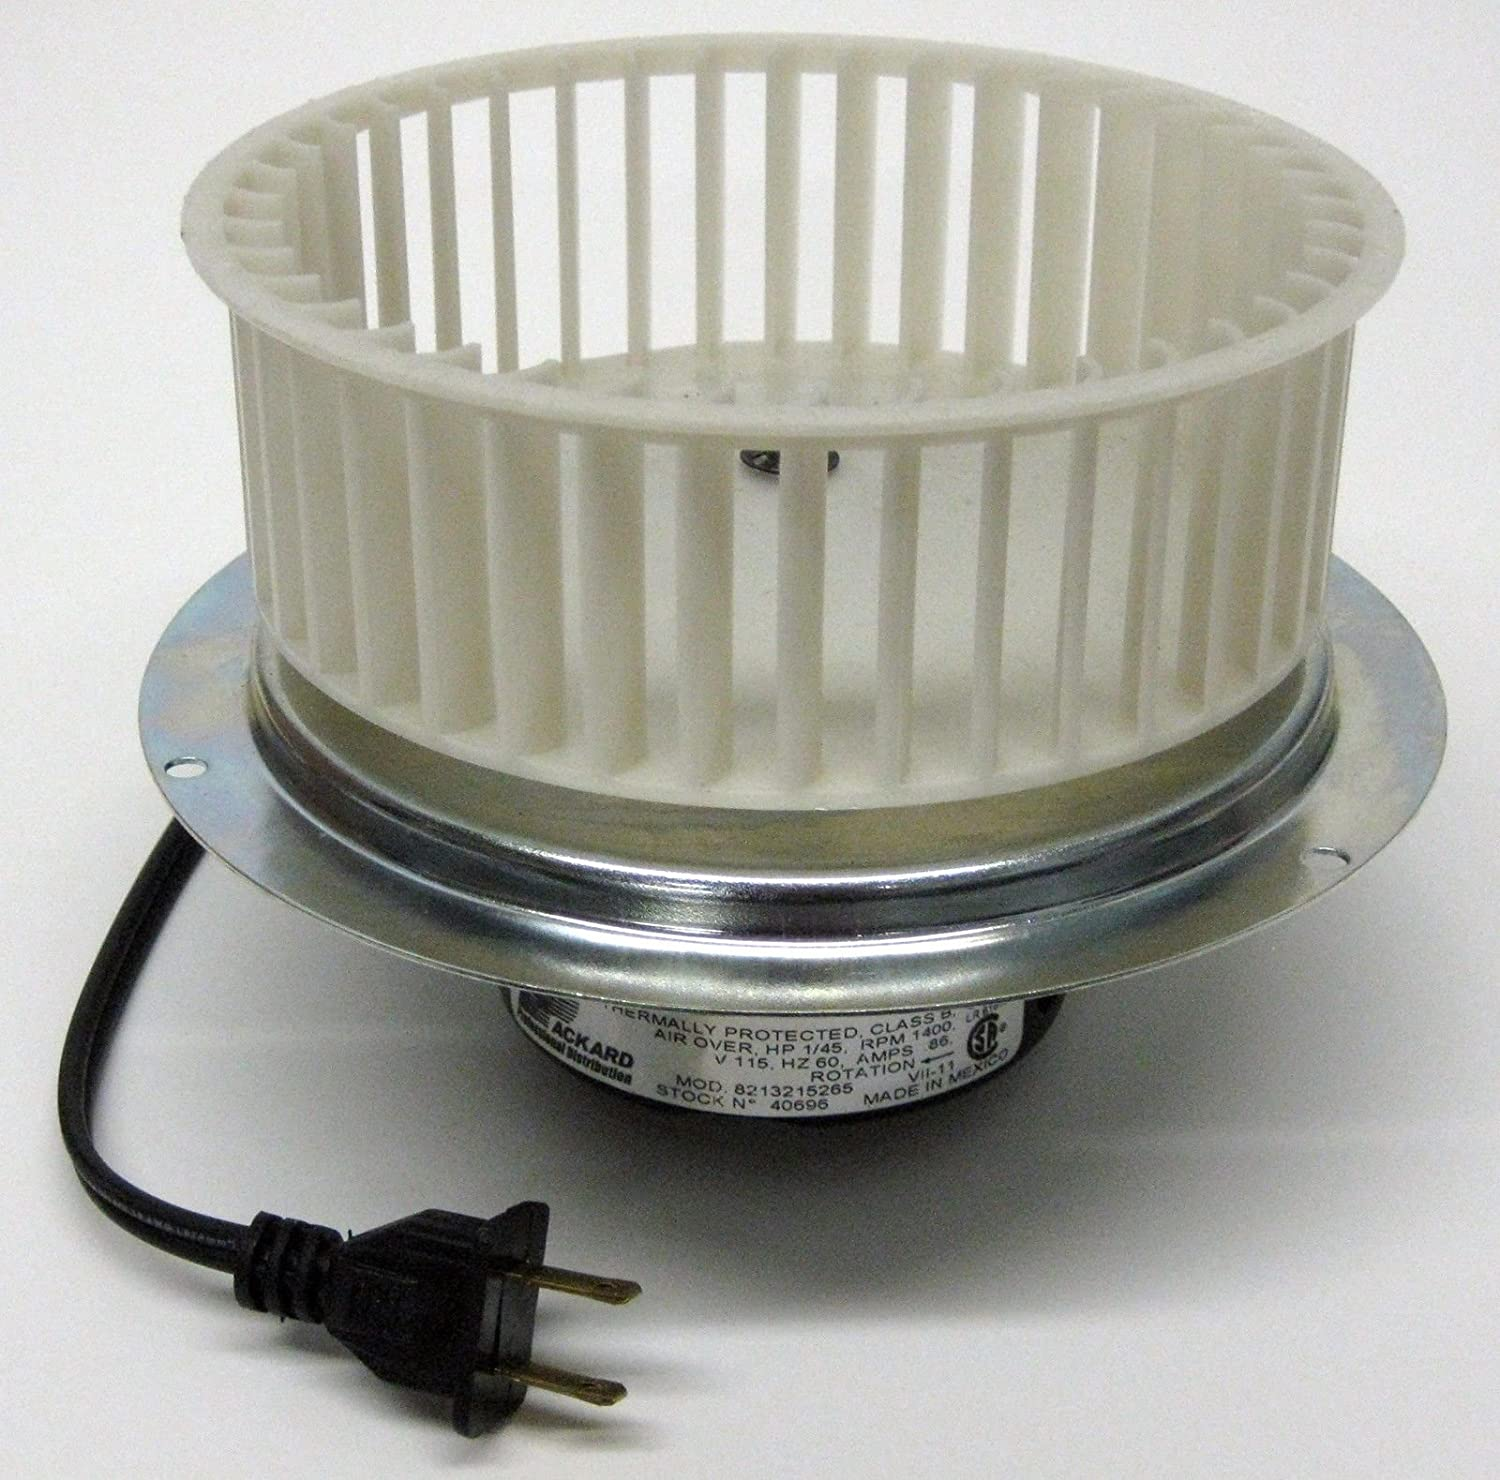 Nutone bathroom fans parts online nutone bathroom fan for Bath fan motor replacement